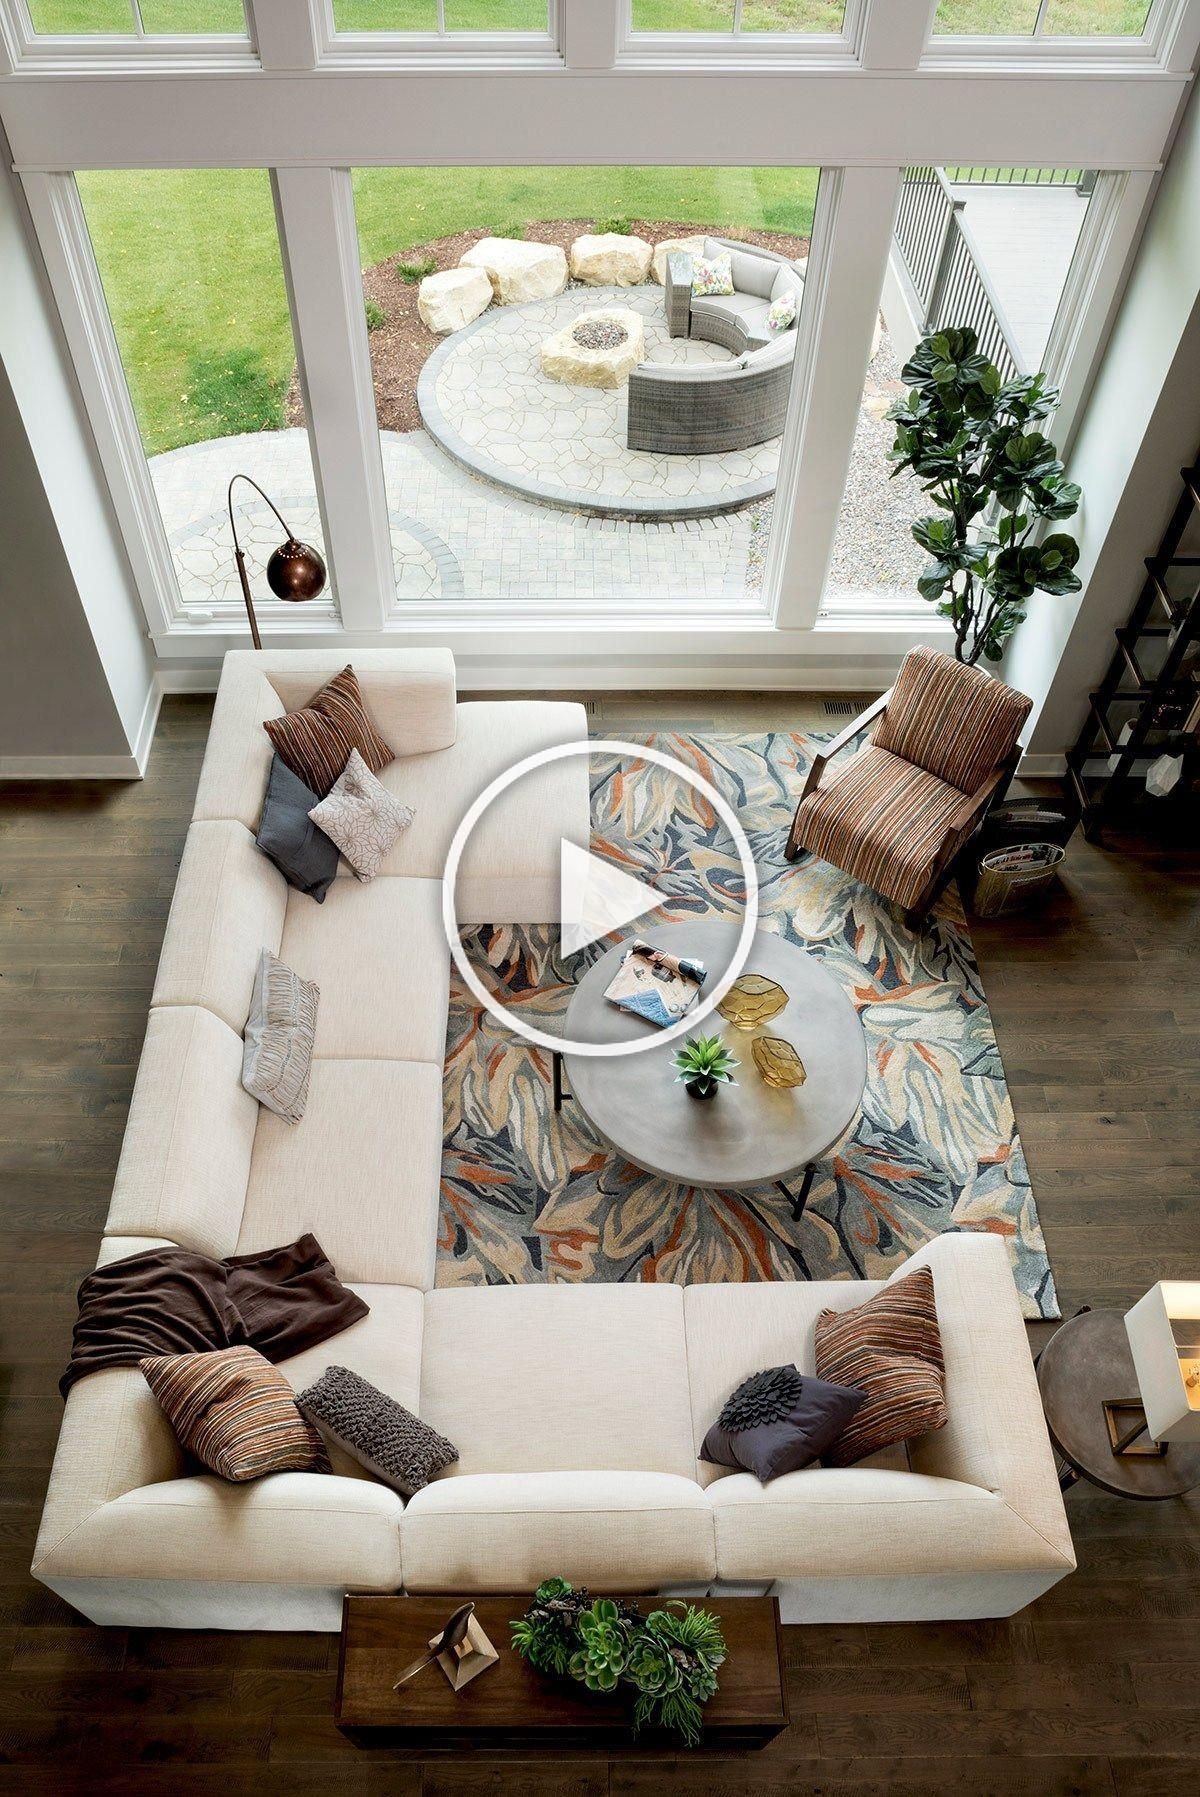 Pin By Helena Sofia On Ideias Casa In 2021 Open Living Room Design Living Room Design Layout Living Room Furniture Layout